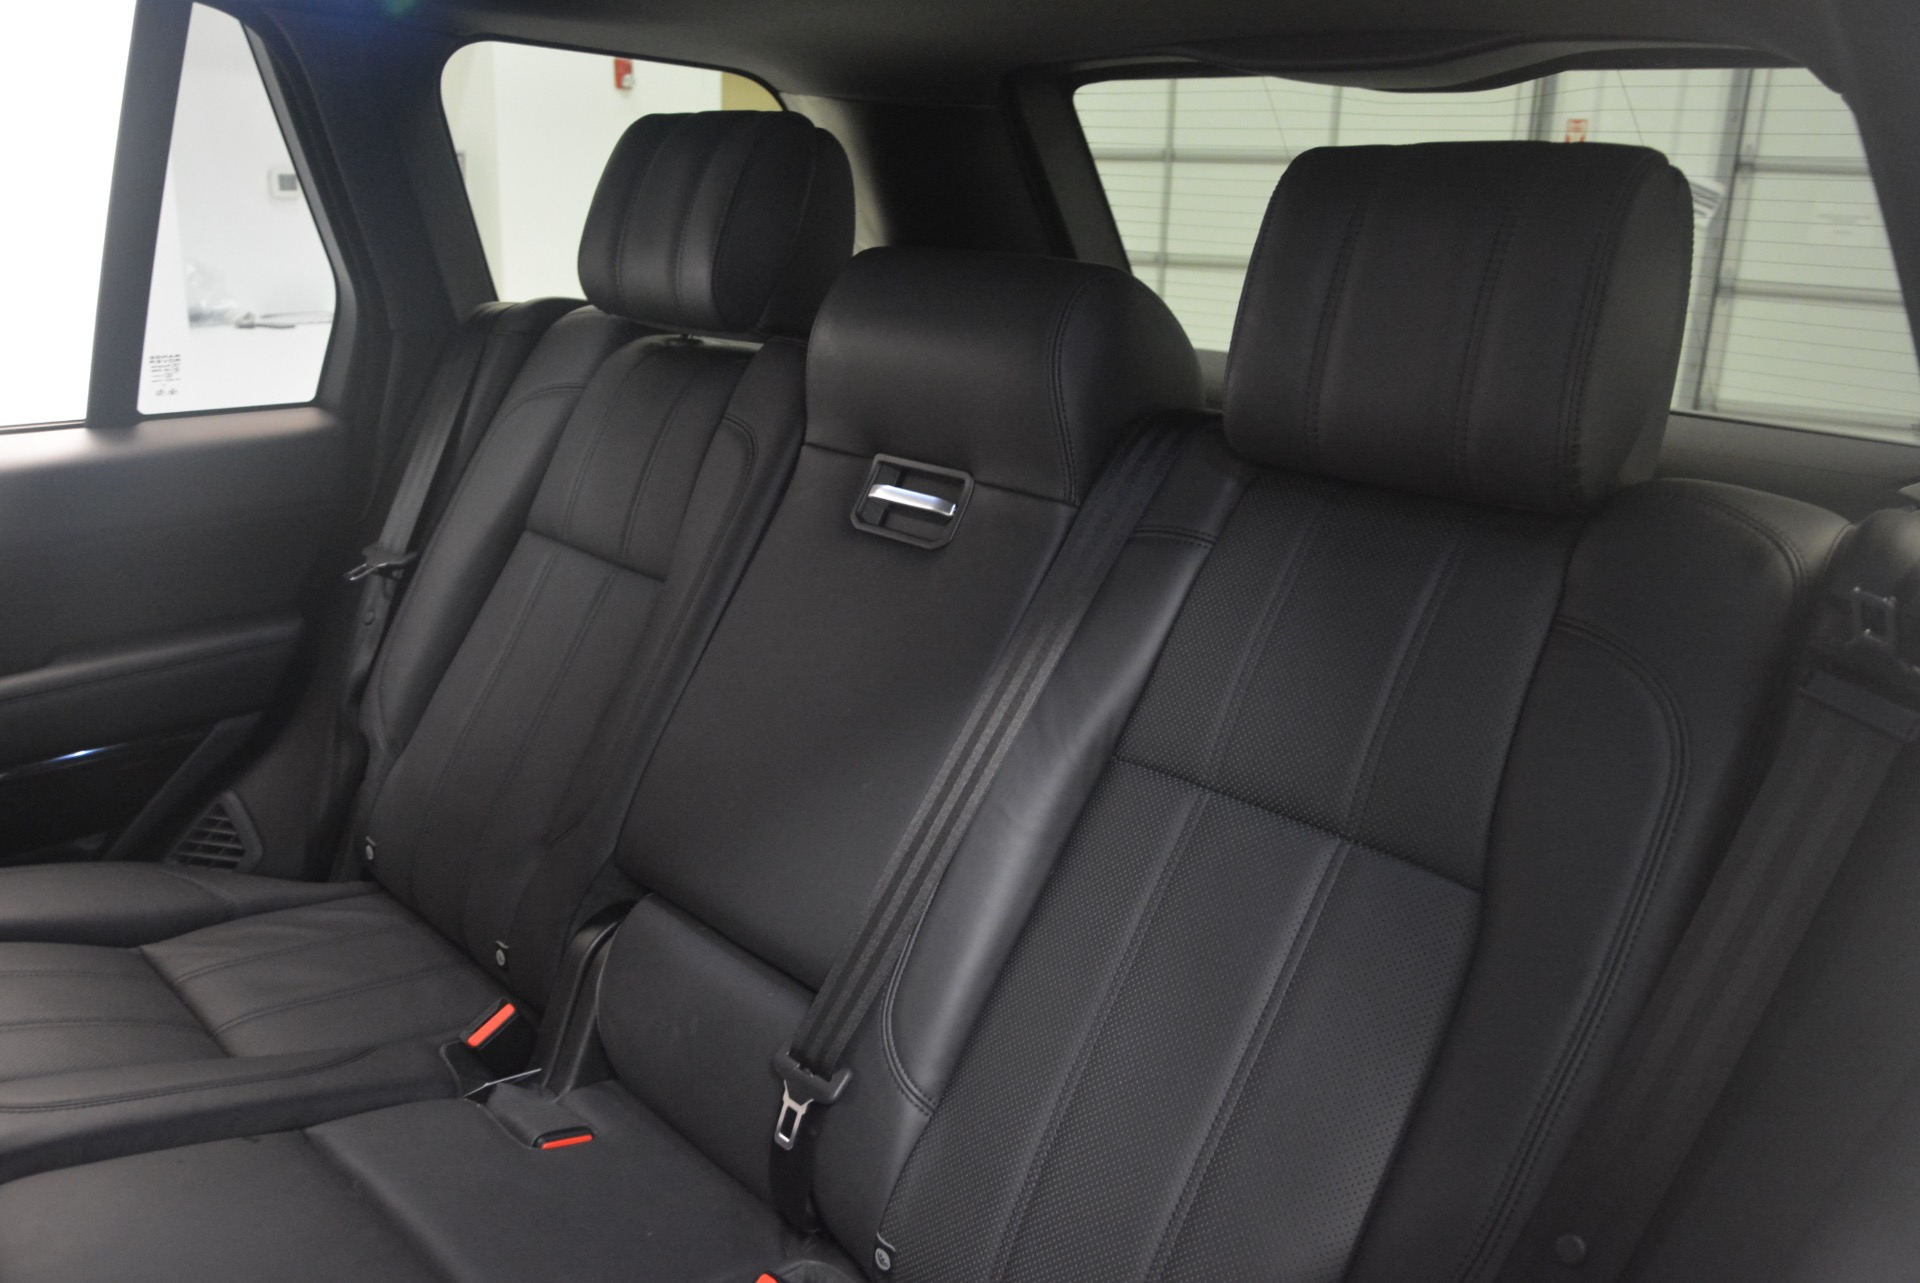 Used 2015 Land Rover Range Rover Supercharged For Sale In Westport, CT 1292_p25